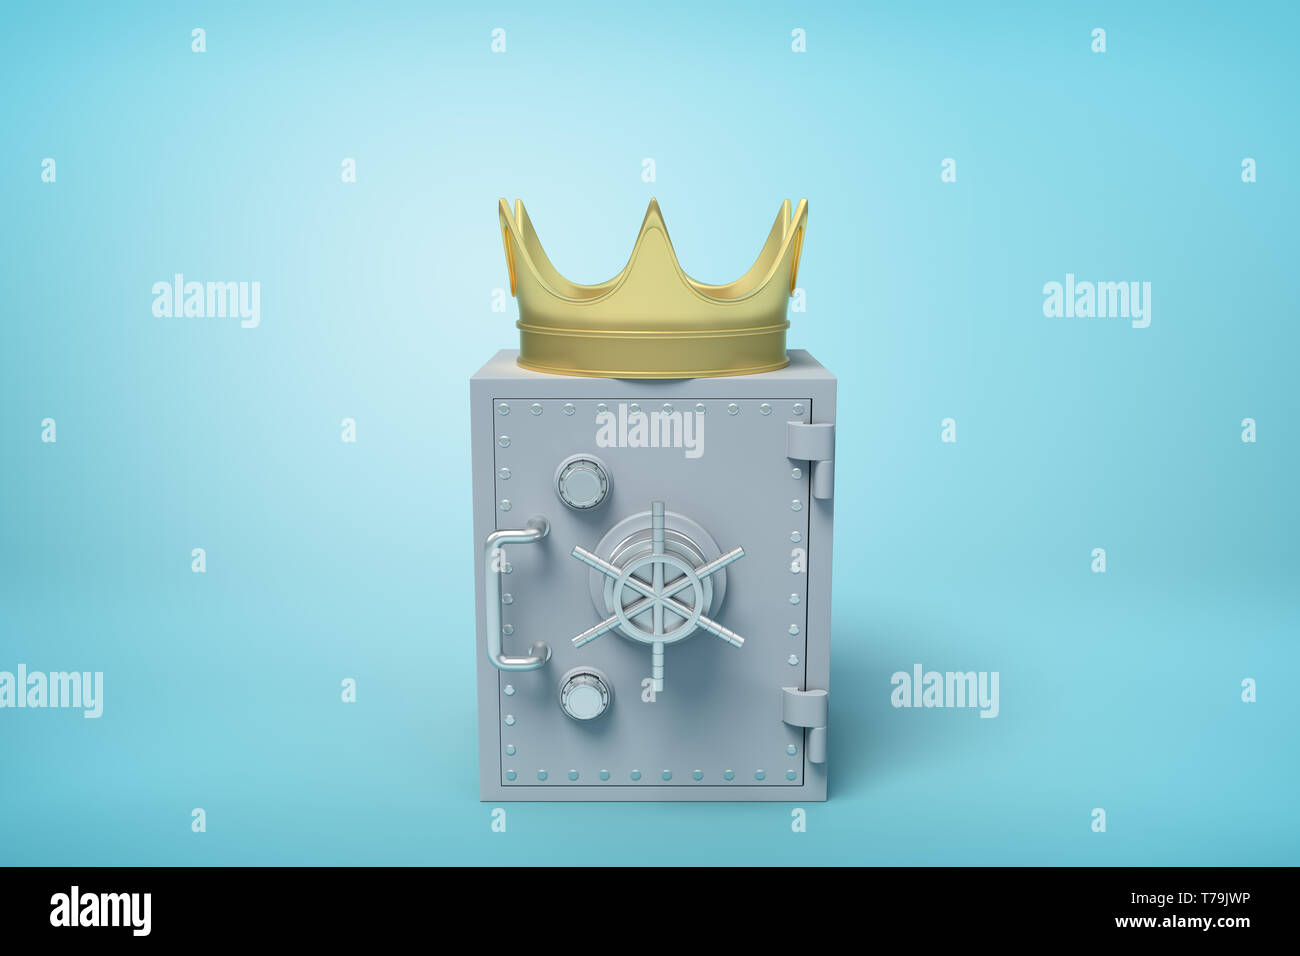 3d front close-up rendering of closed grey metal safe with golden crown on top on light-blue background. Stock Photo